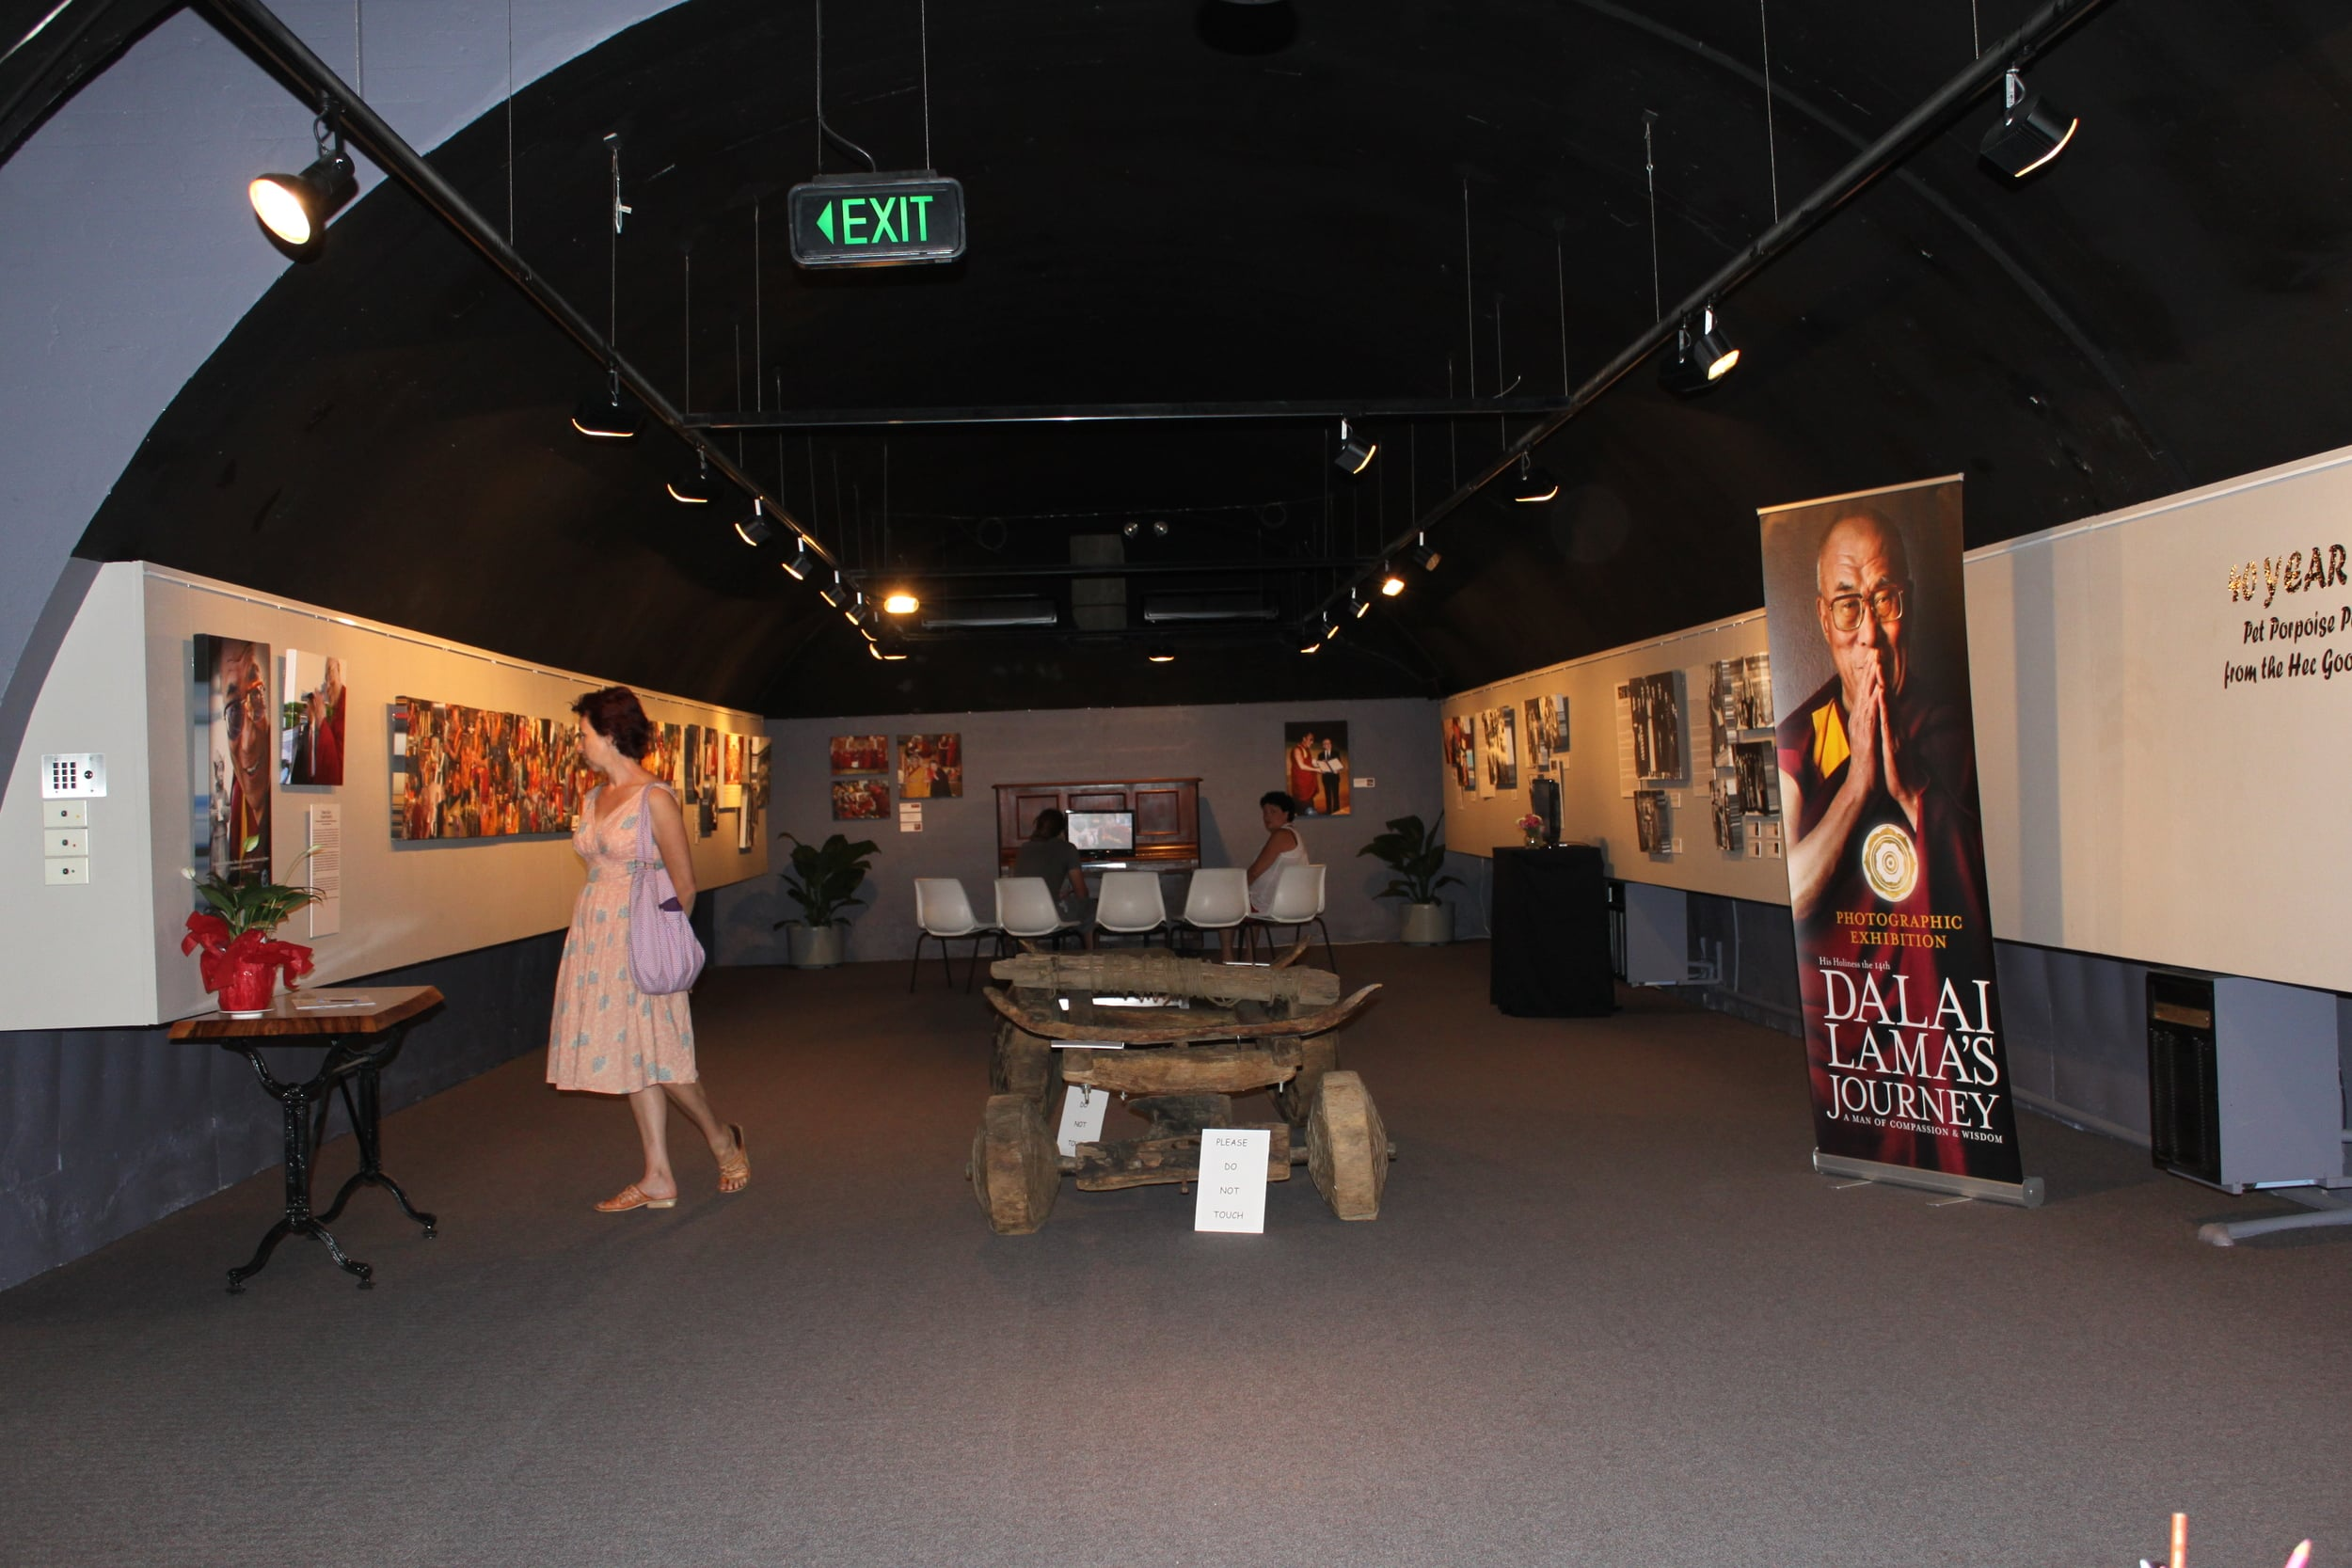 The Dalai Lama's Journey Exhibition  Bunker Gallery, Coffs Harbour NSW, 2011